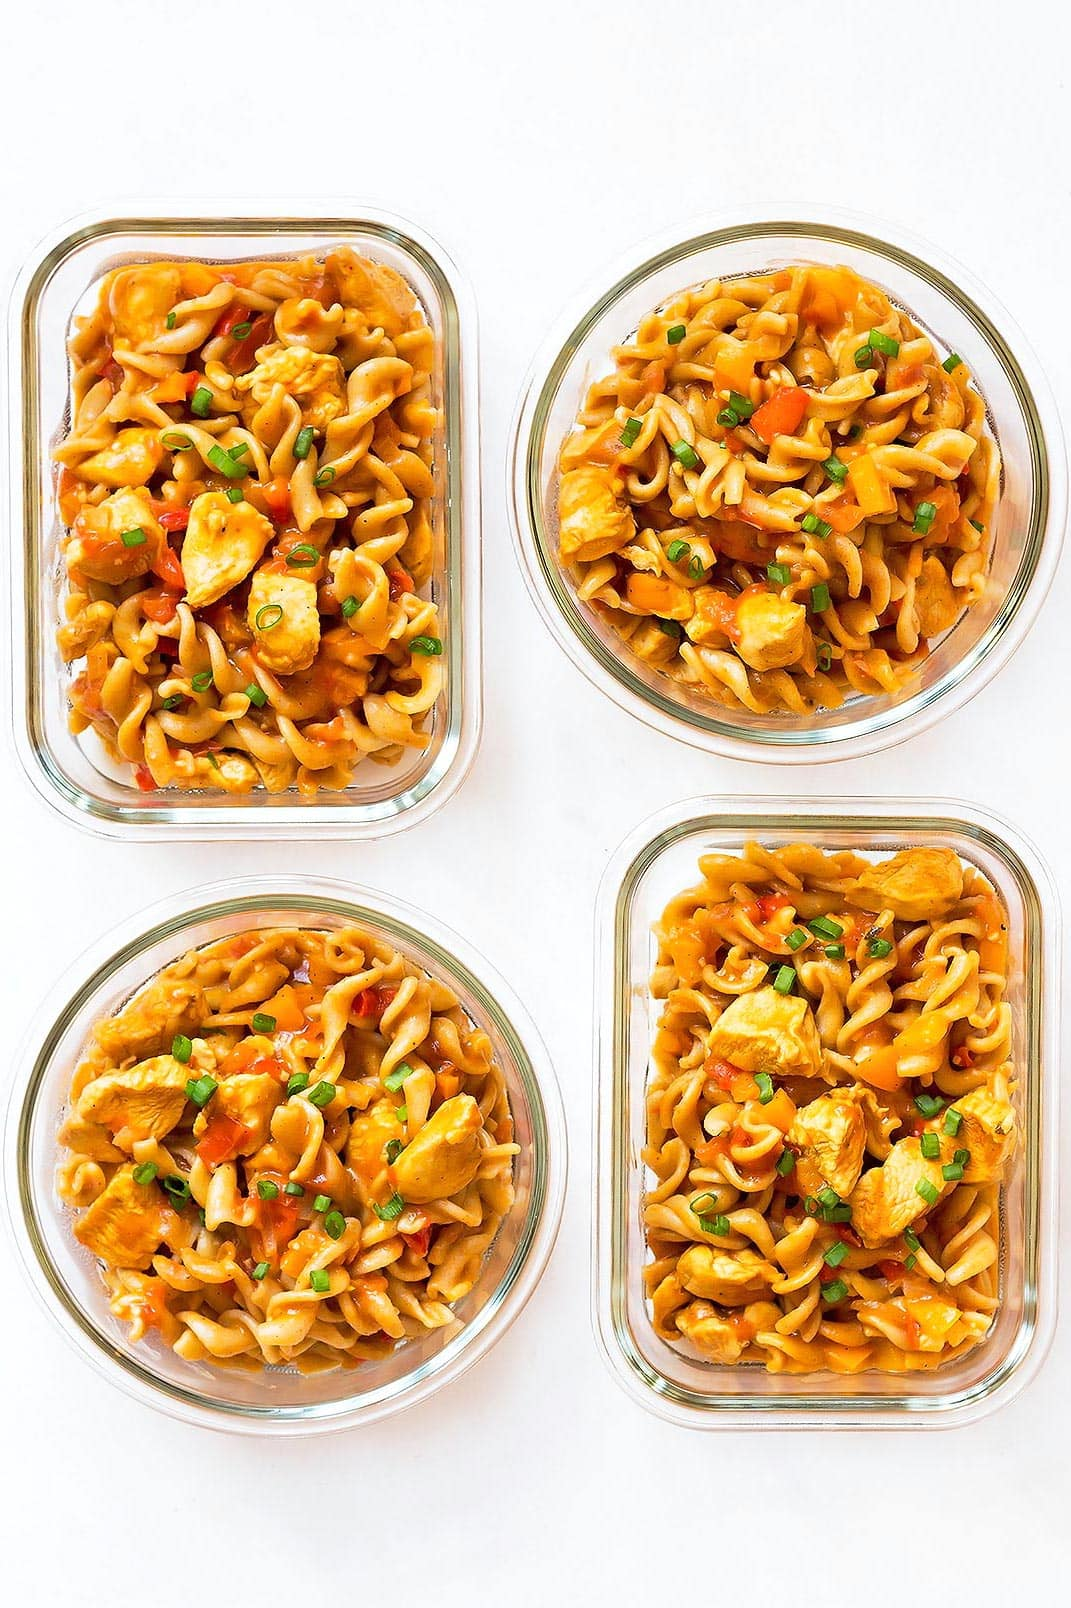 Cajun Chicken Pasta Meal prep containers